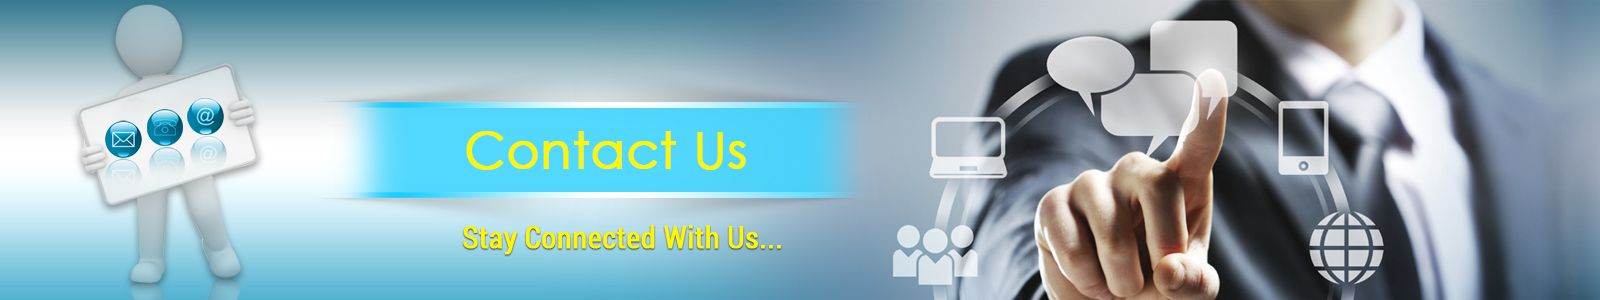 contact us banner.jpg